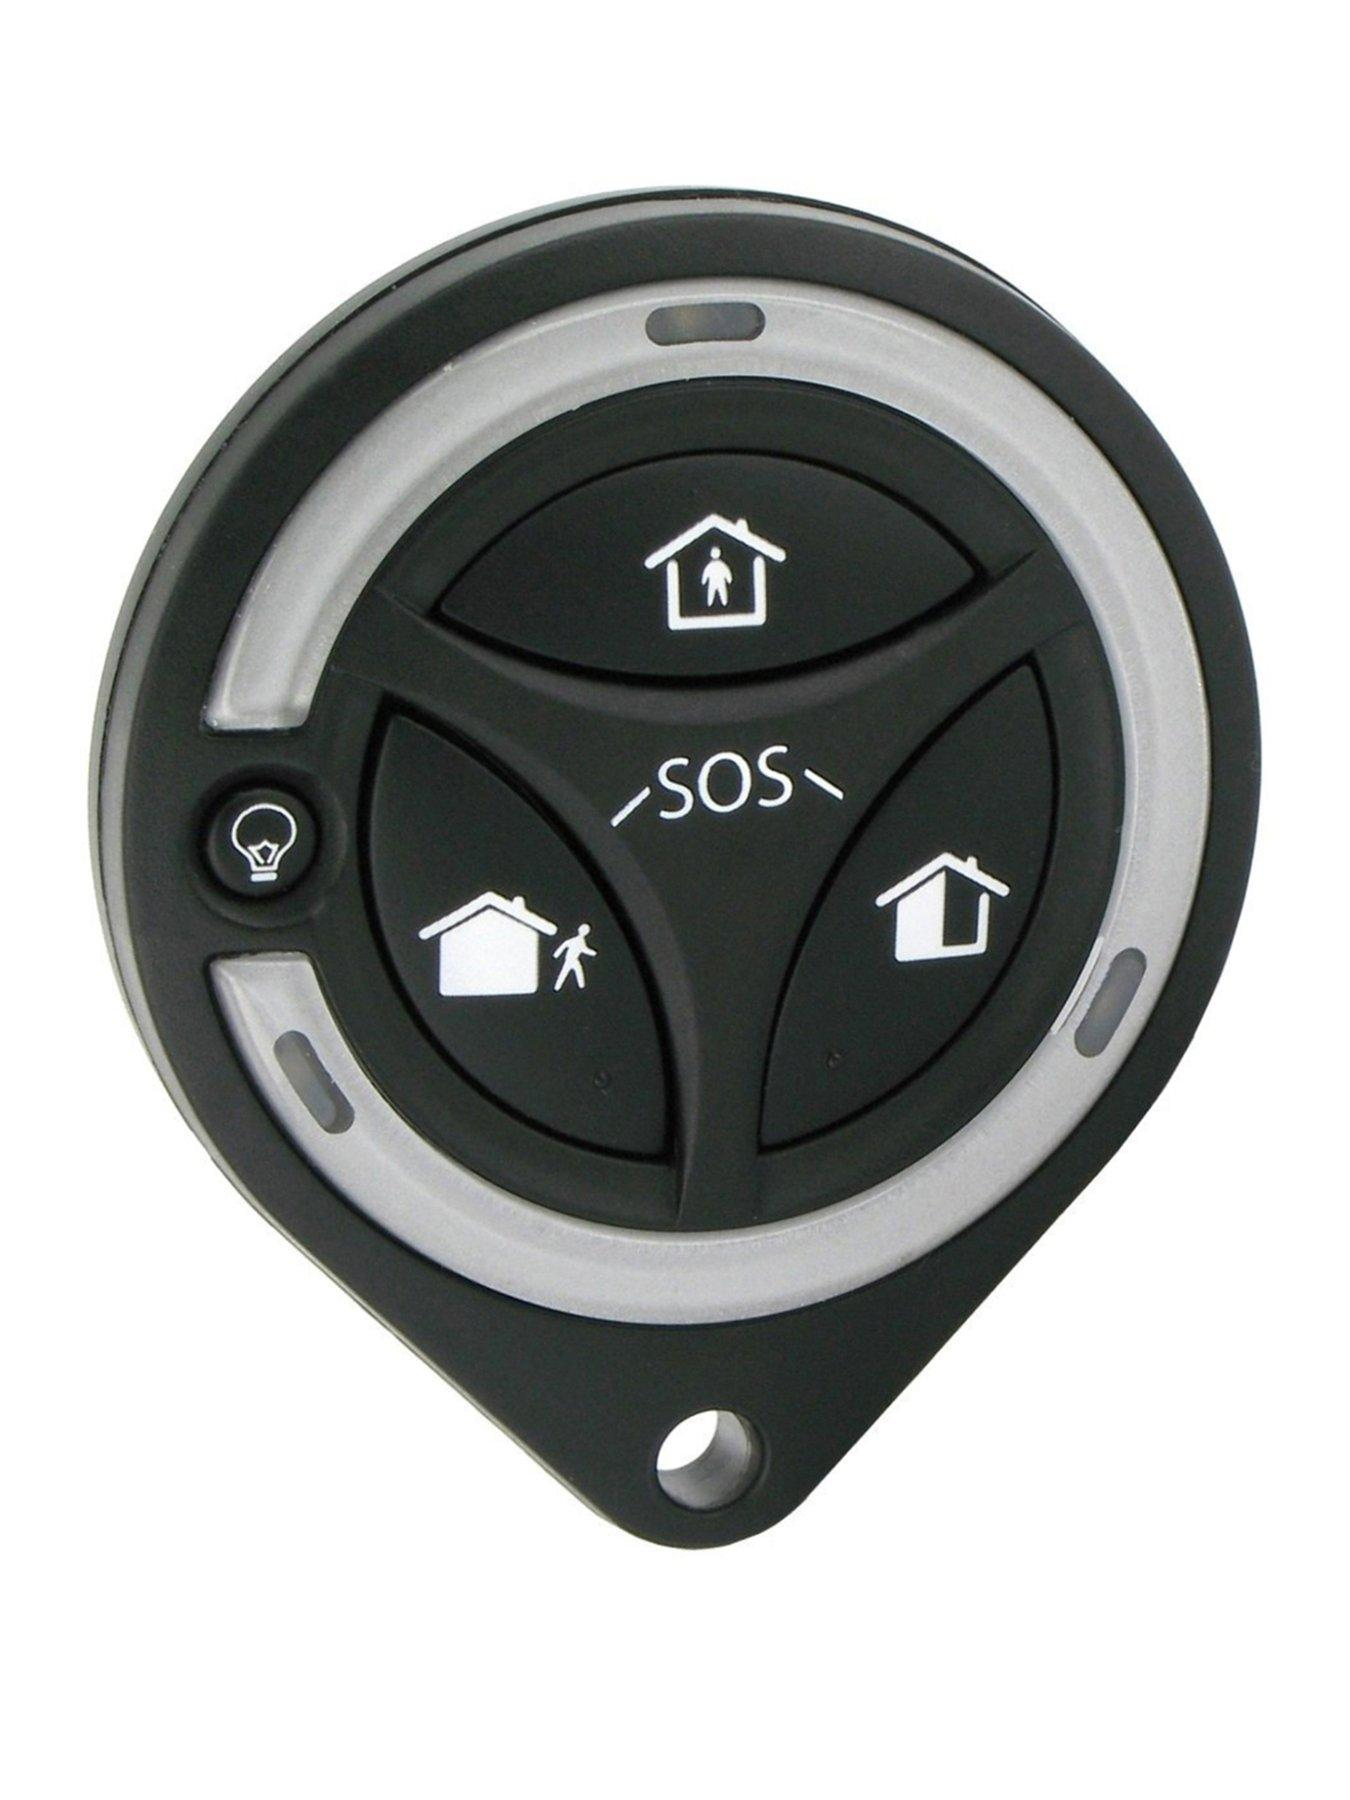 Compare prices for Honeywell Evo Wireless Remote Key Fob